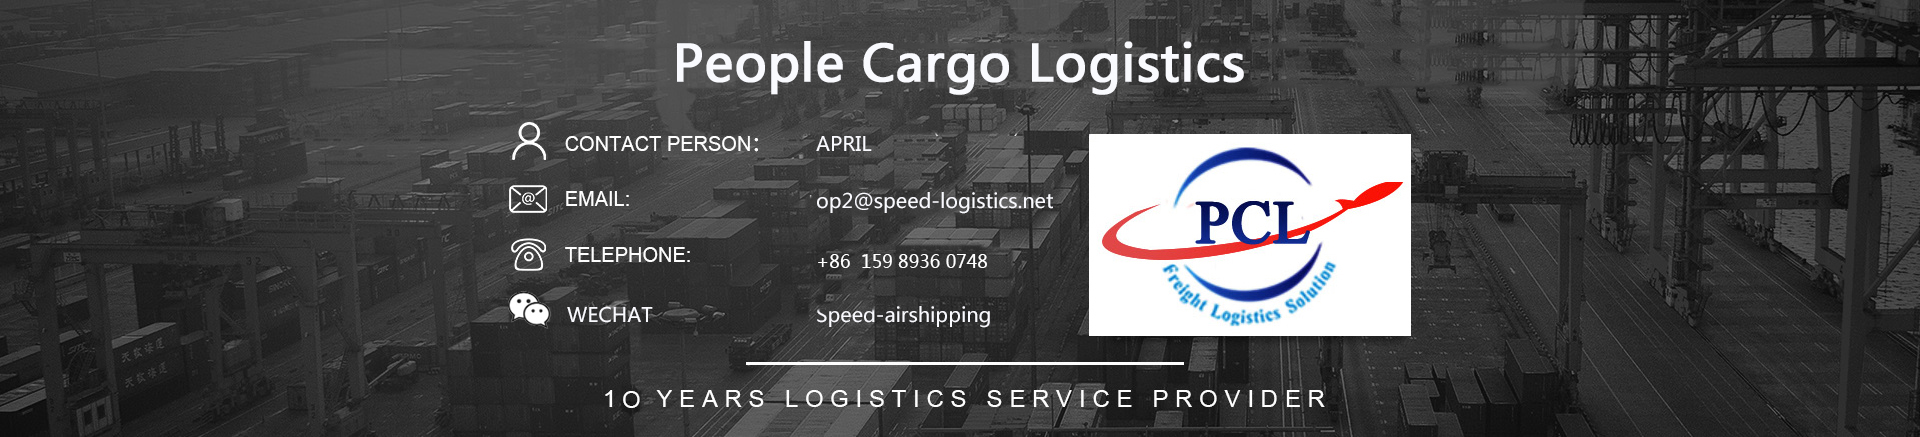 PEOPLE CARGO